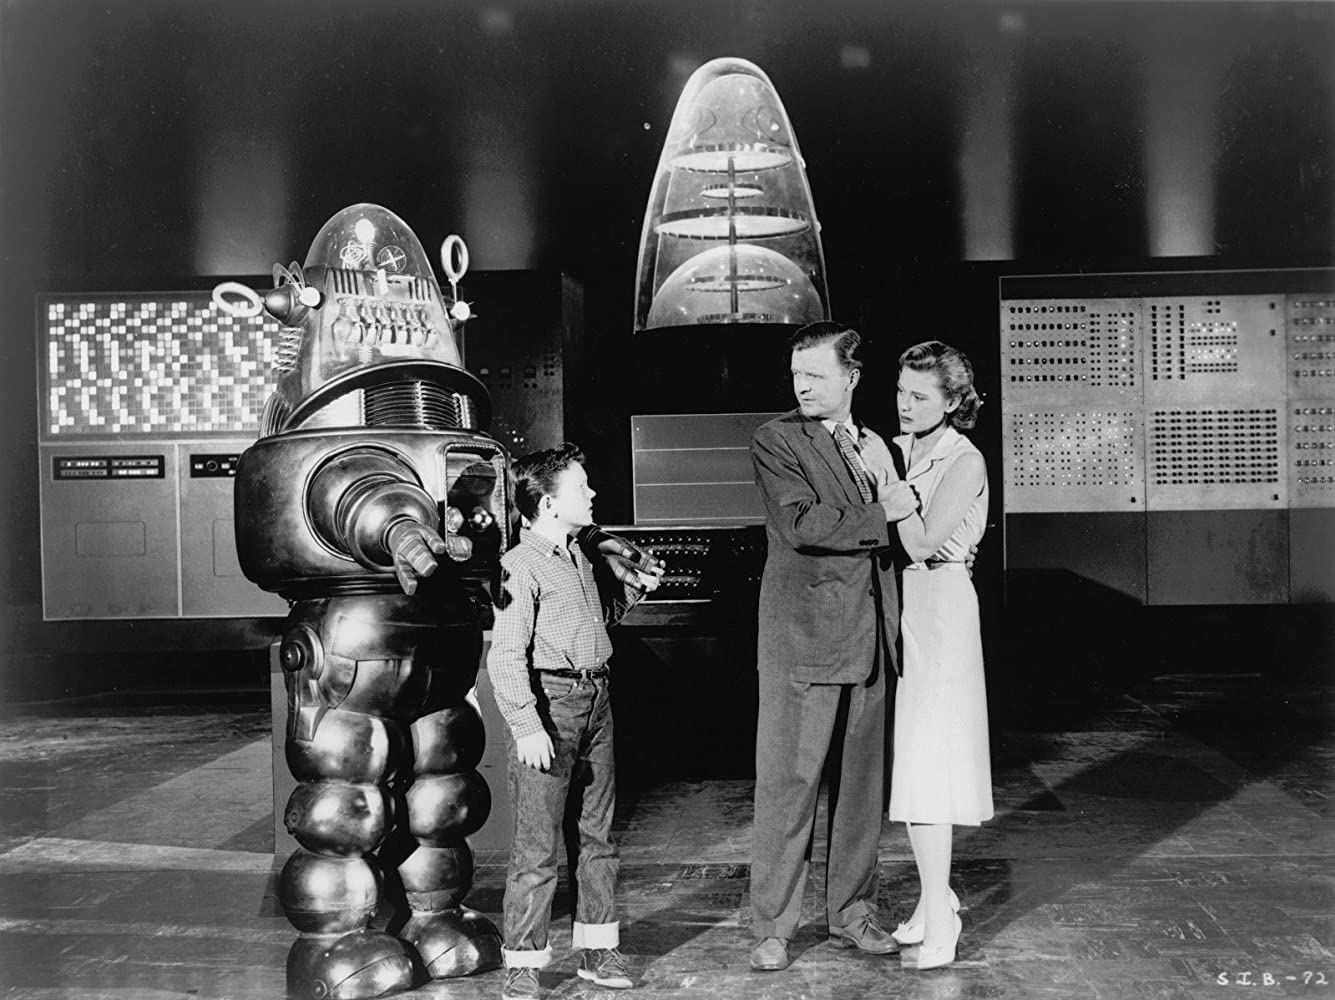 Robbie the Robot, young Richard Eyer and parents Phillip Abbott and Diane Brewster with Univac in the background in The Invisible Boy (1957)